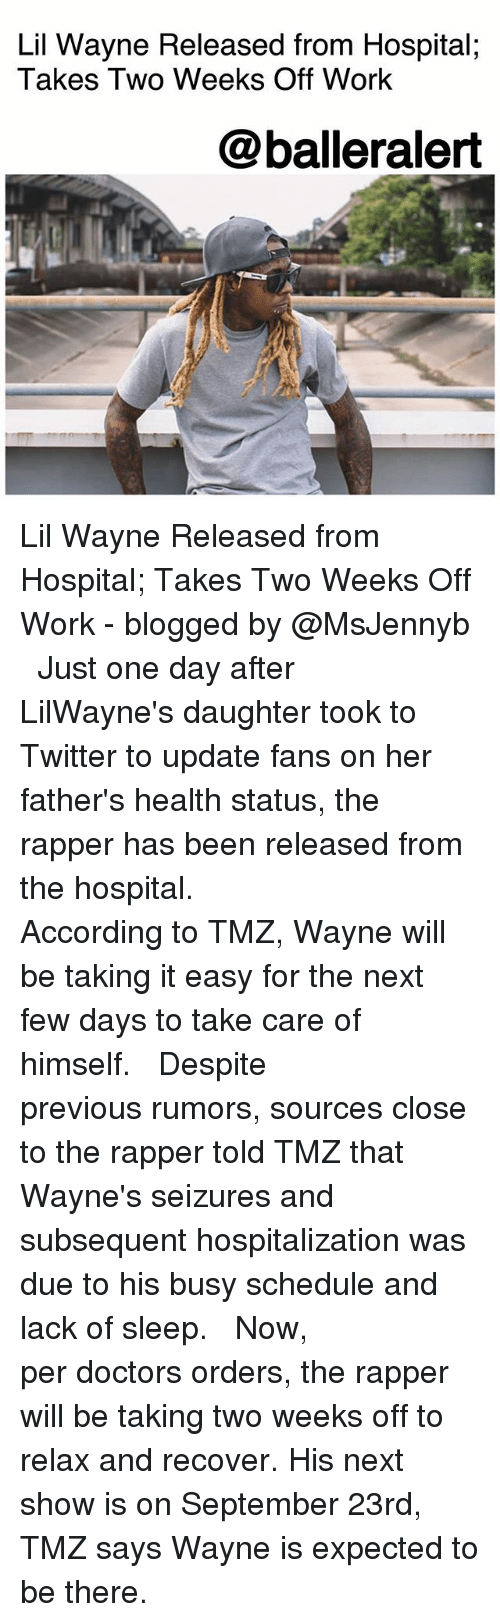 Offed Himself: Lil Wayne Released from Hospital;  Takes Two Weeks Off Work  @balleralert Lil Wayne Released from Hospital; Takes Two Weeks Off Work - blogged by @MsJennyb ⠀⠀⠀⠀⠀⠀⠀ ⠀⠀⠀⠀⠀⠀⠀ Just one day after LilWayne's daughter took to Twitter to update fans on her father's health status, the rapper has been released from the hospital. ⠀⠀⠀⠀⠀⠀⠀ ⠀⠀⠀⠀⠀⠀⠀ According to TMZ, Wayne will be taking it easy for the next few days to take care of himself. ⠀⠀⠀⠀⠀⠀⠀ ⠀⠀⠀⠀⠀⠀⠀ Despite previous rumors, sources close to the rapper told TMZ that Wayne's seizures and subsequent hospitalization was due to his busy schedule and lack of sleep. ⠀⠀⠀⠀⠀⠀⠀ ⠀⠀⠀⠀⠀⠀⠀ Now, per doctors orders, the rapper will be taking two weeks off to relax and recover. His next show is on September 23rd, TMZ says Wayne is expected to be there.